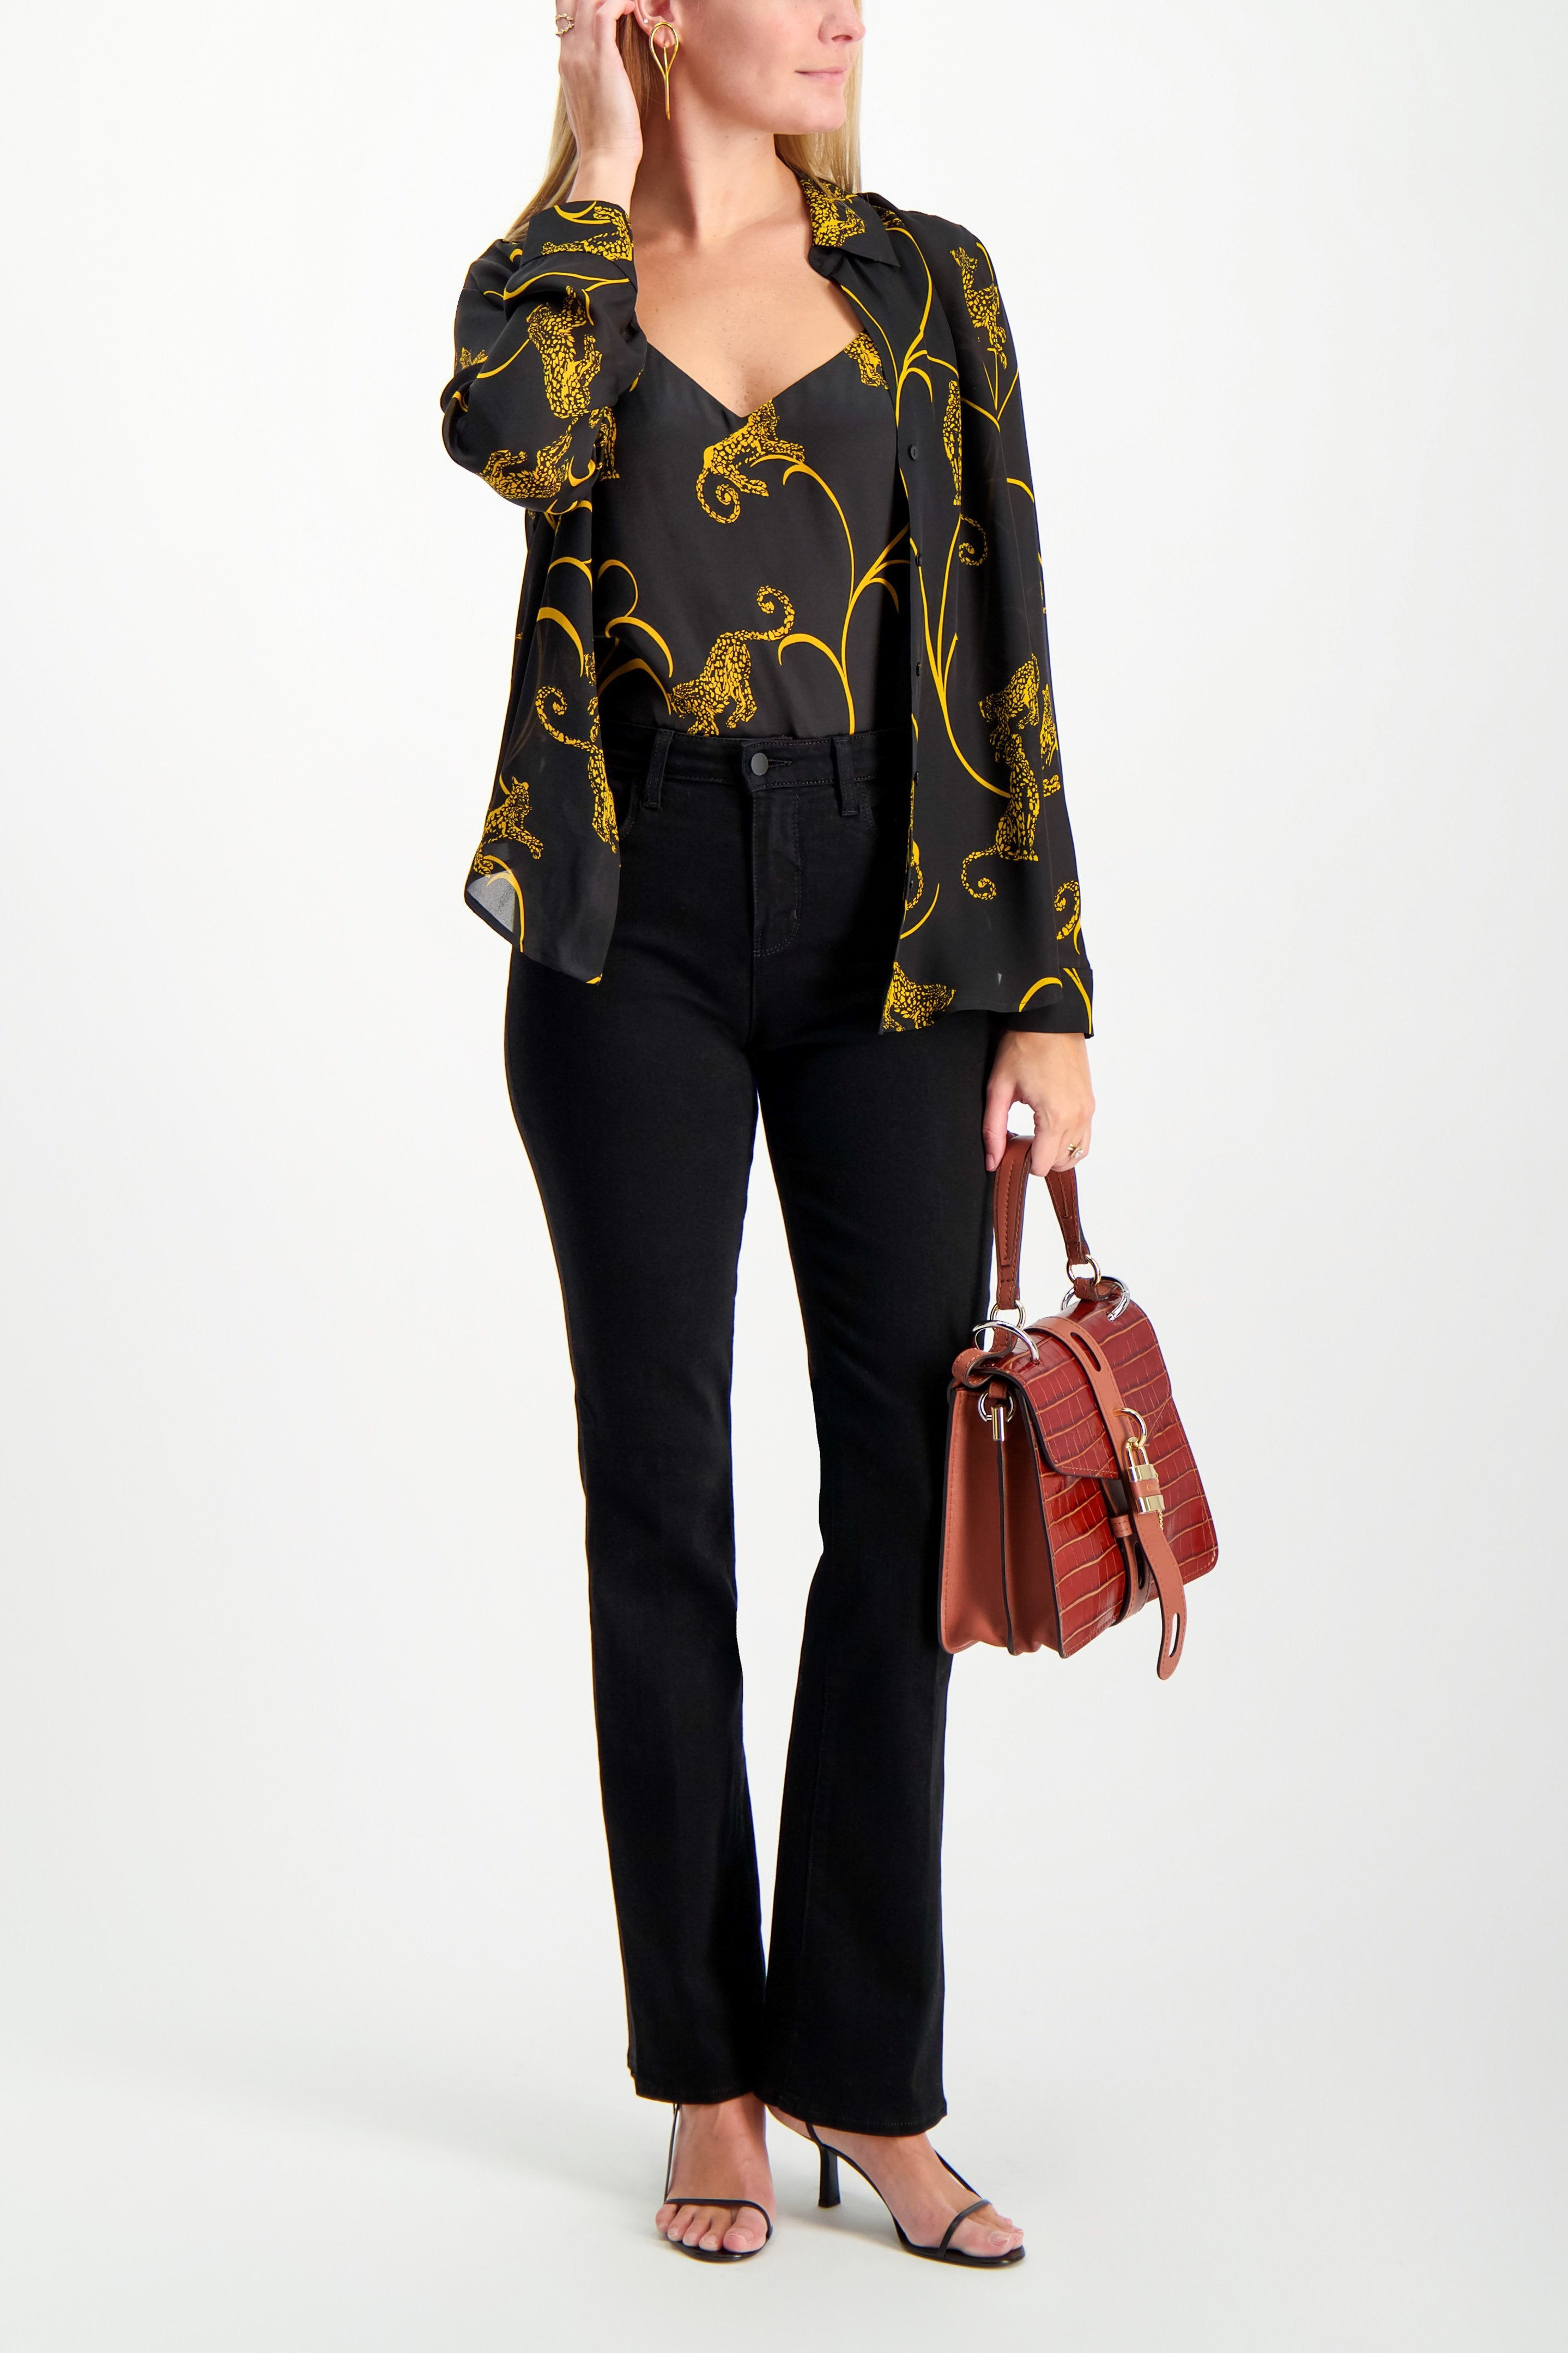 Full Body Image Of Model Wearing L'agence Jane Spaghetti Strap Top Black/Gold Tiger